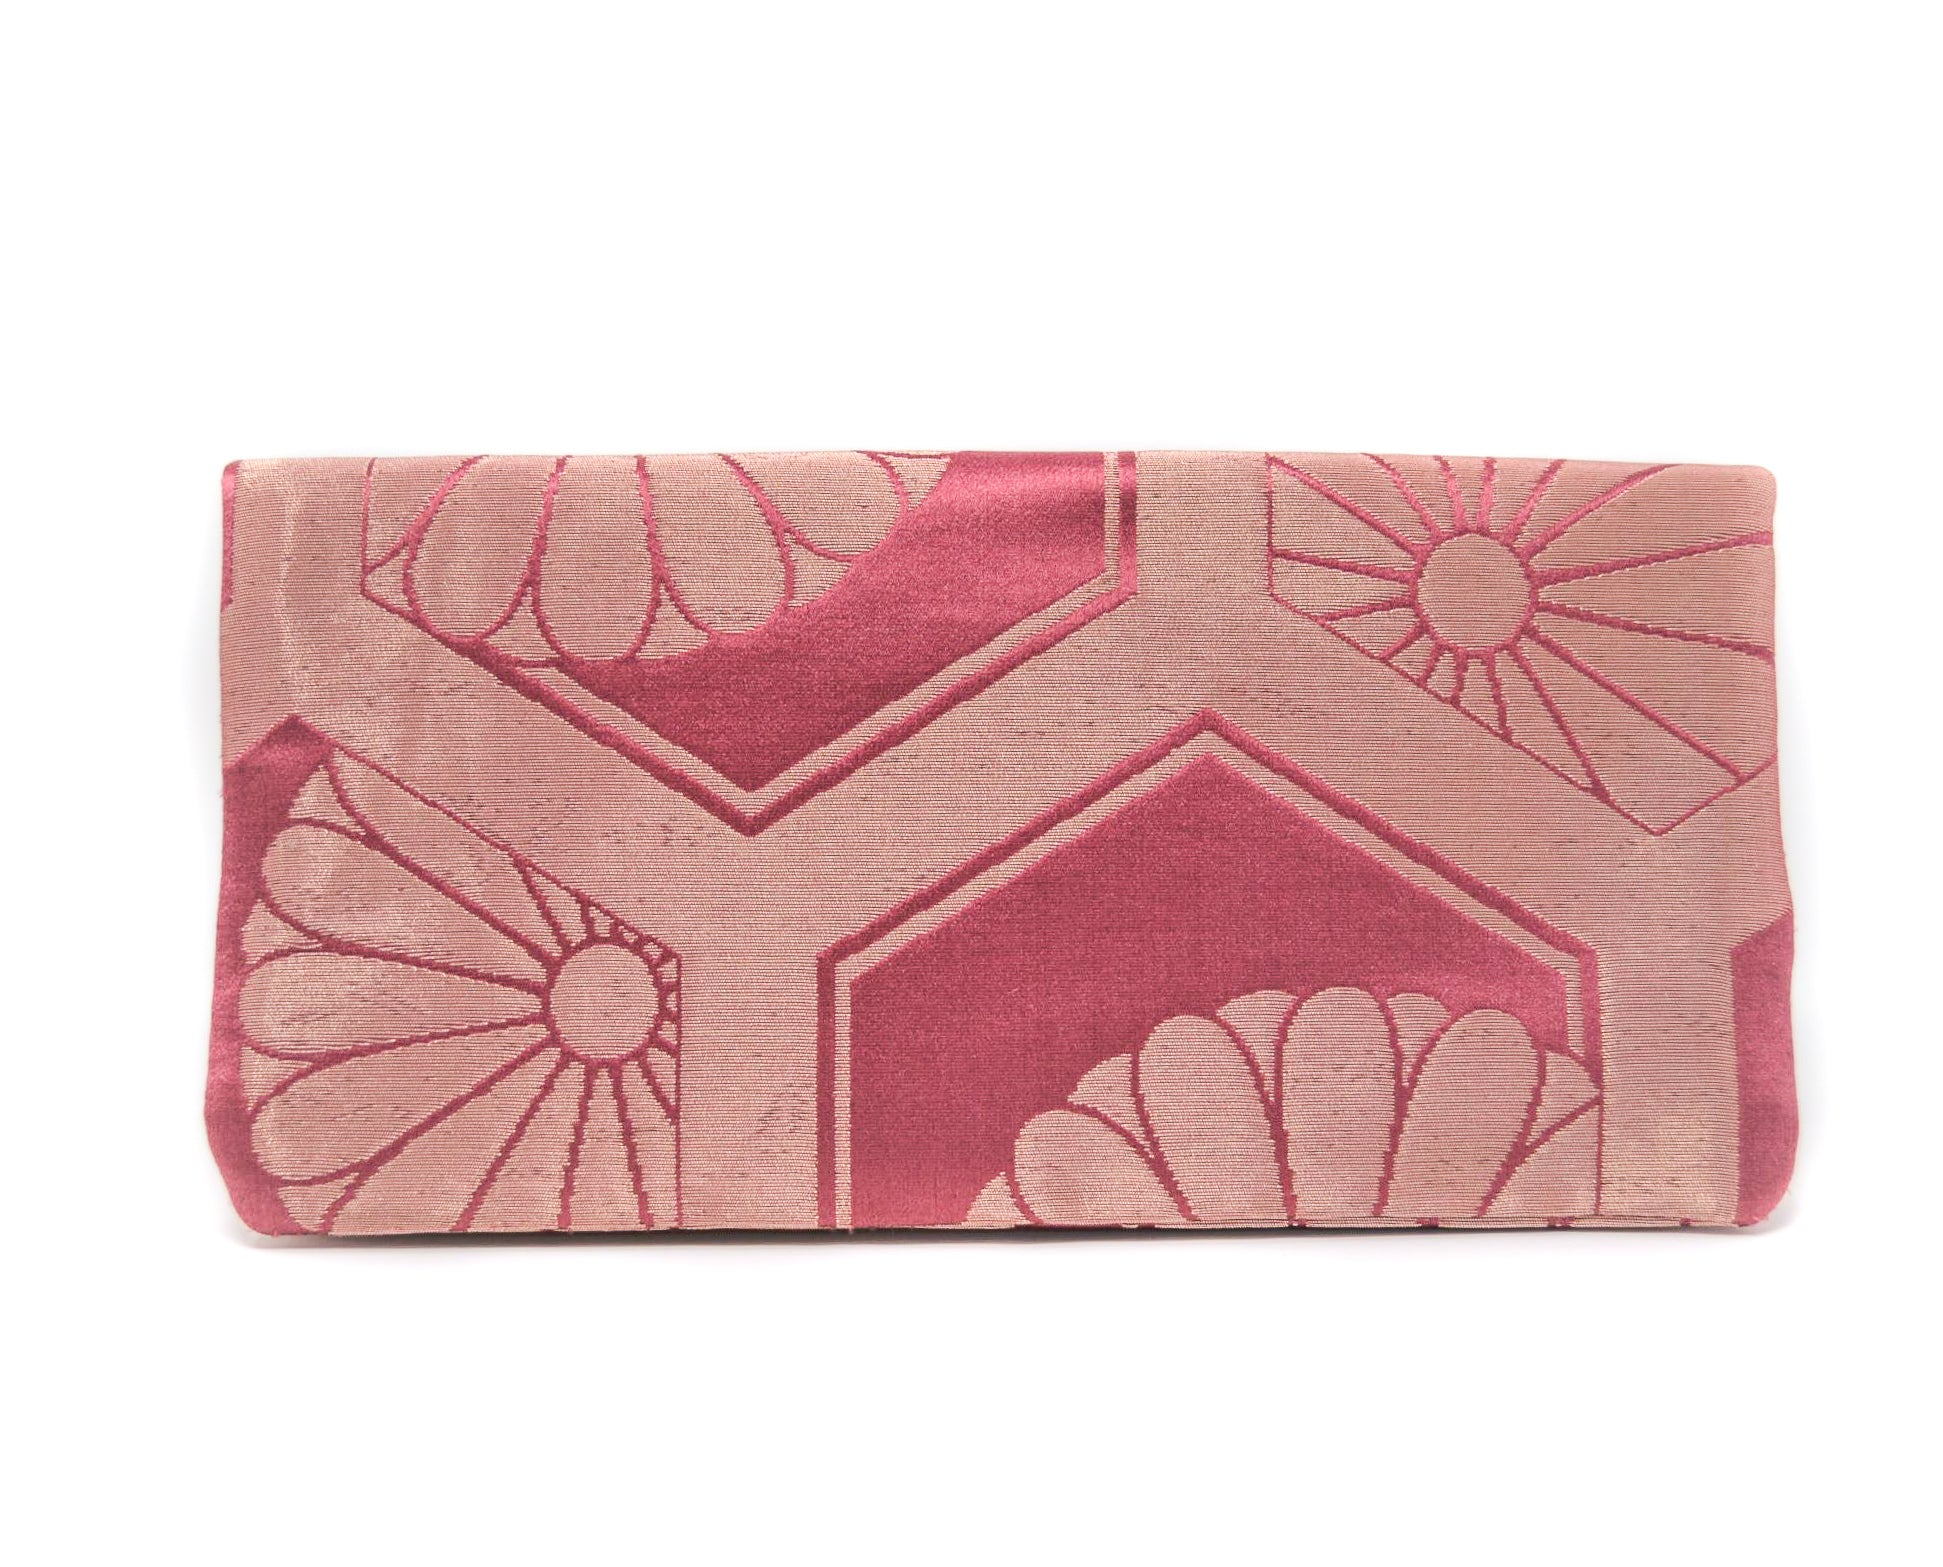 Daisy Delight - Handmade Envelope Clutch Purse